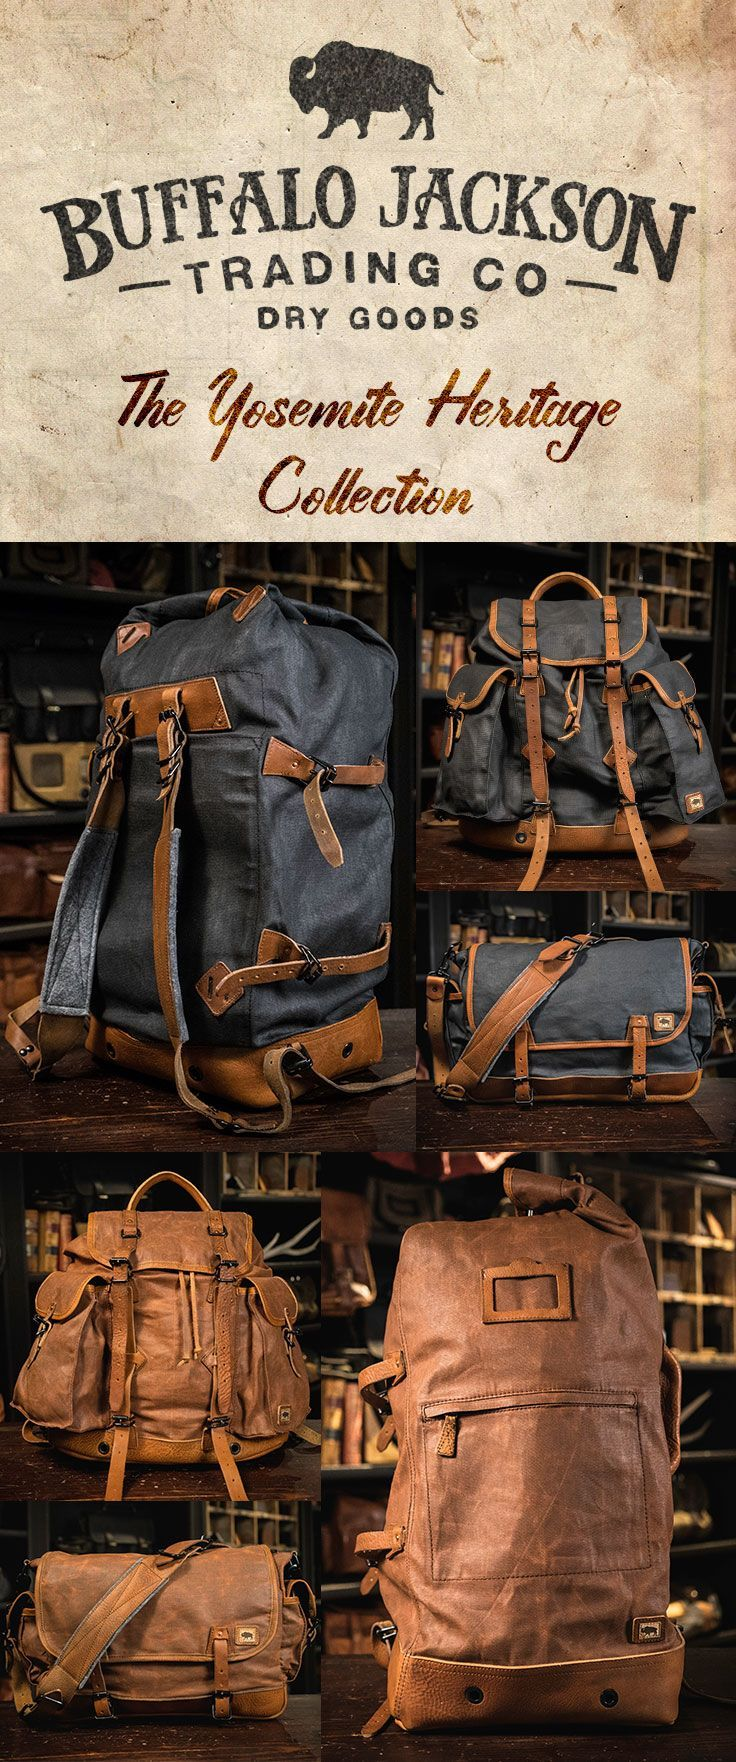 Crafted of waxed canvas and full grain leather with a distressed vintage finish, these bags were built to honor the memory of good men and good days. One of the best Valentines Day gifts for him - or any time of year. vintage military duffle backpack | vintage military rucksack | vintage military messenger bag | valentines gifts